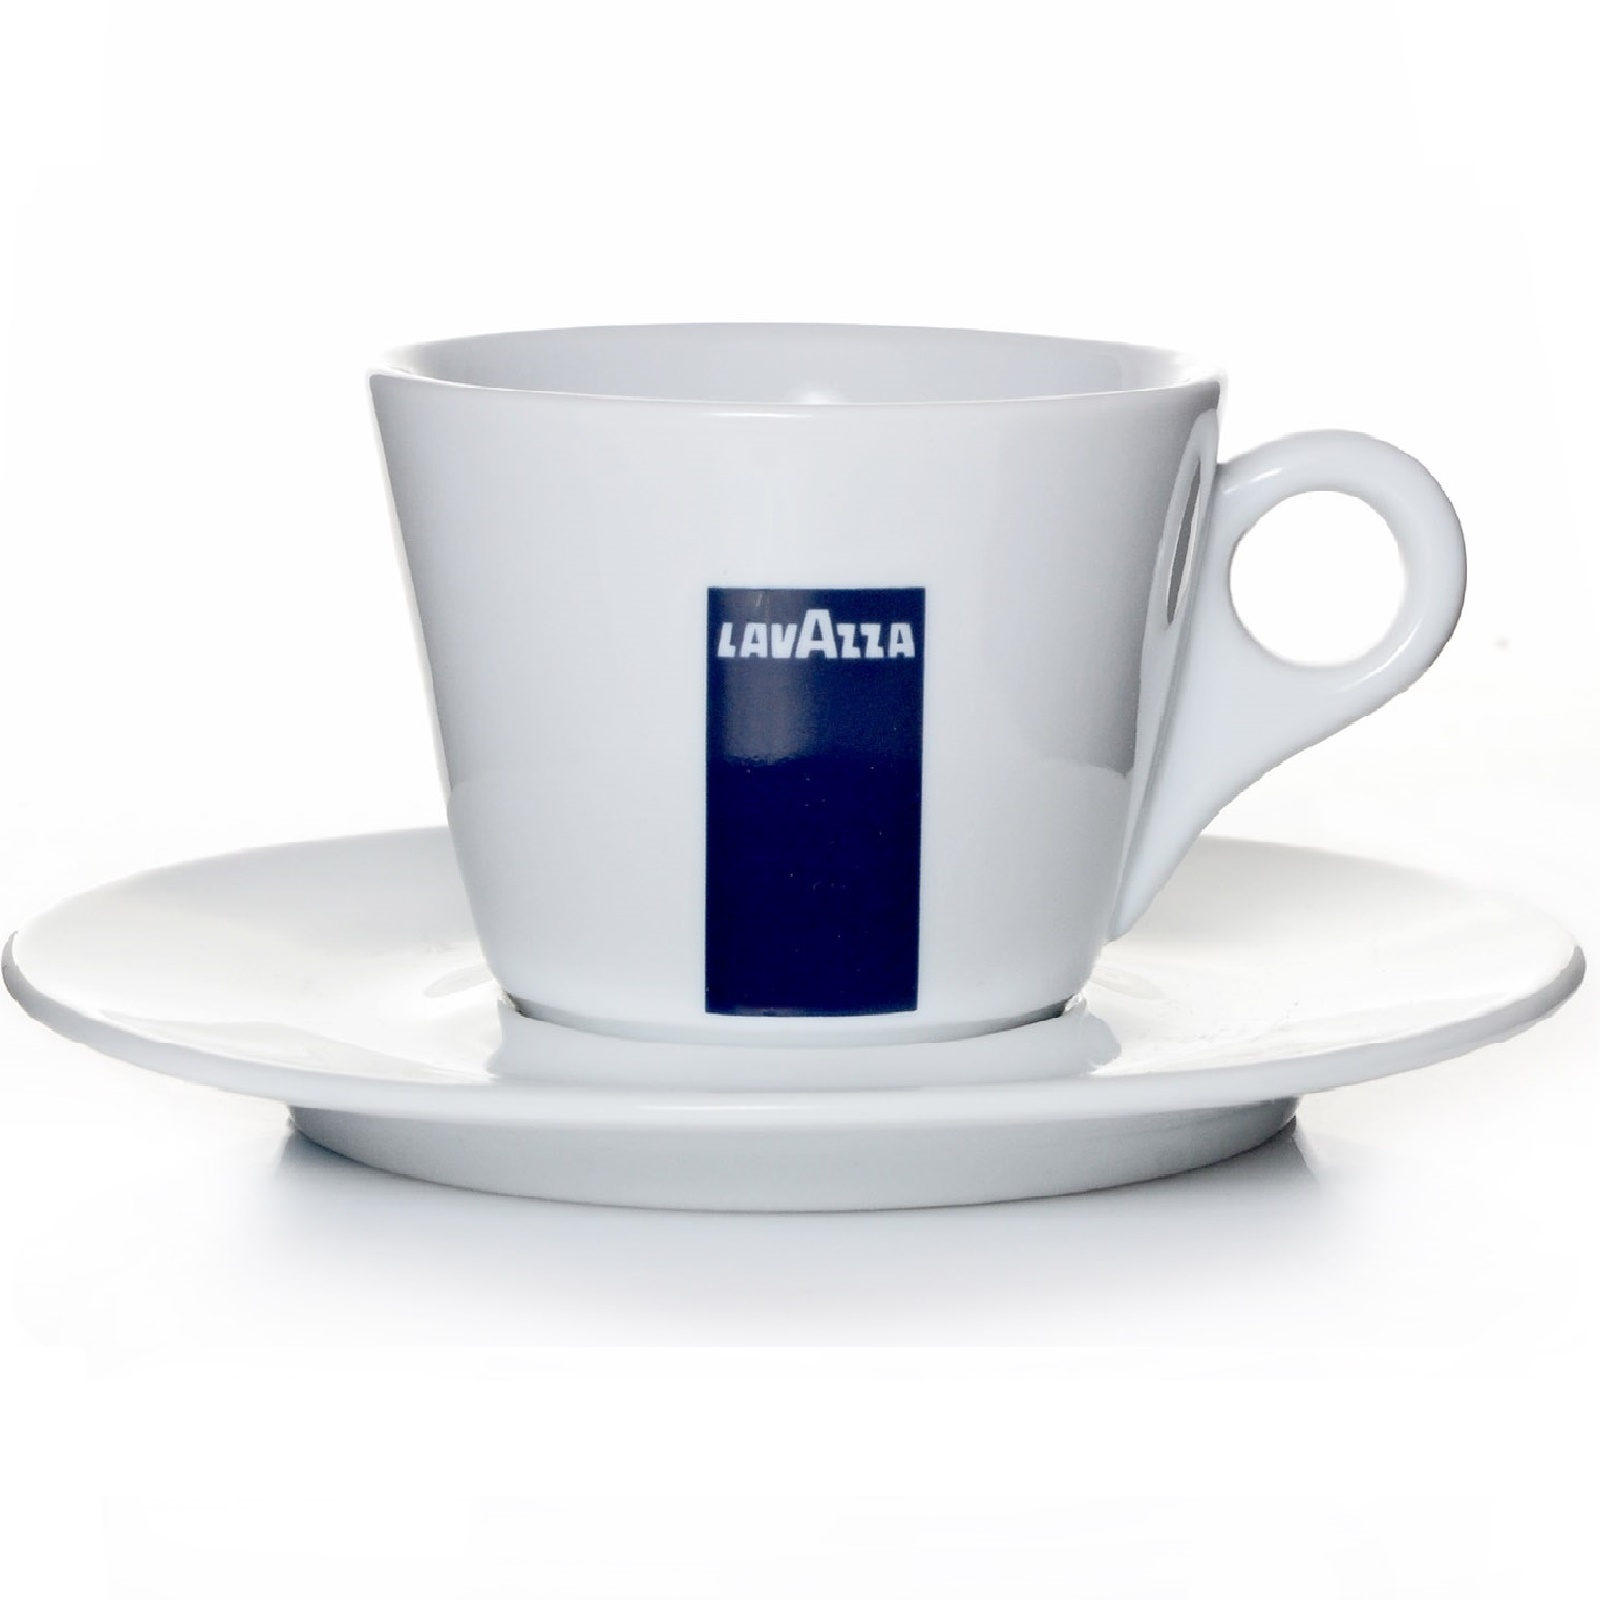 Lavazza Milchkaffee Tasse mit Untertasse BLU Collection